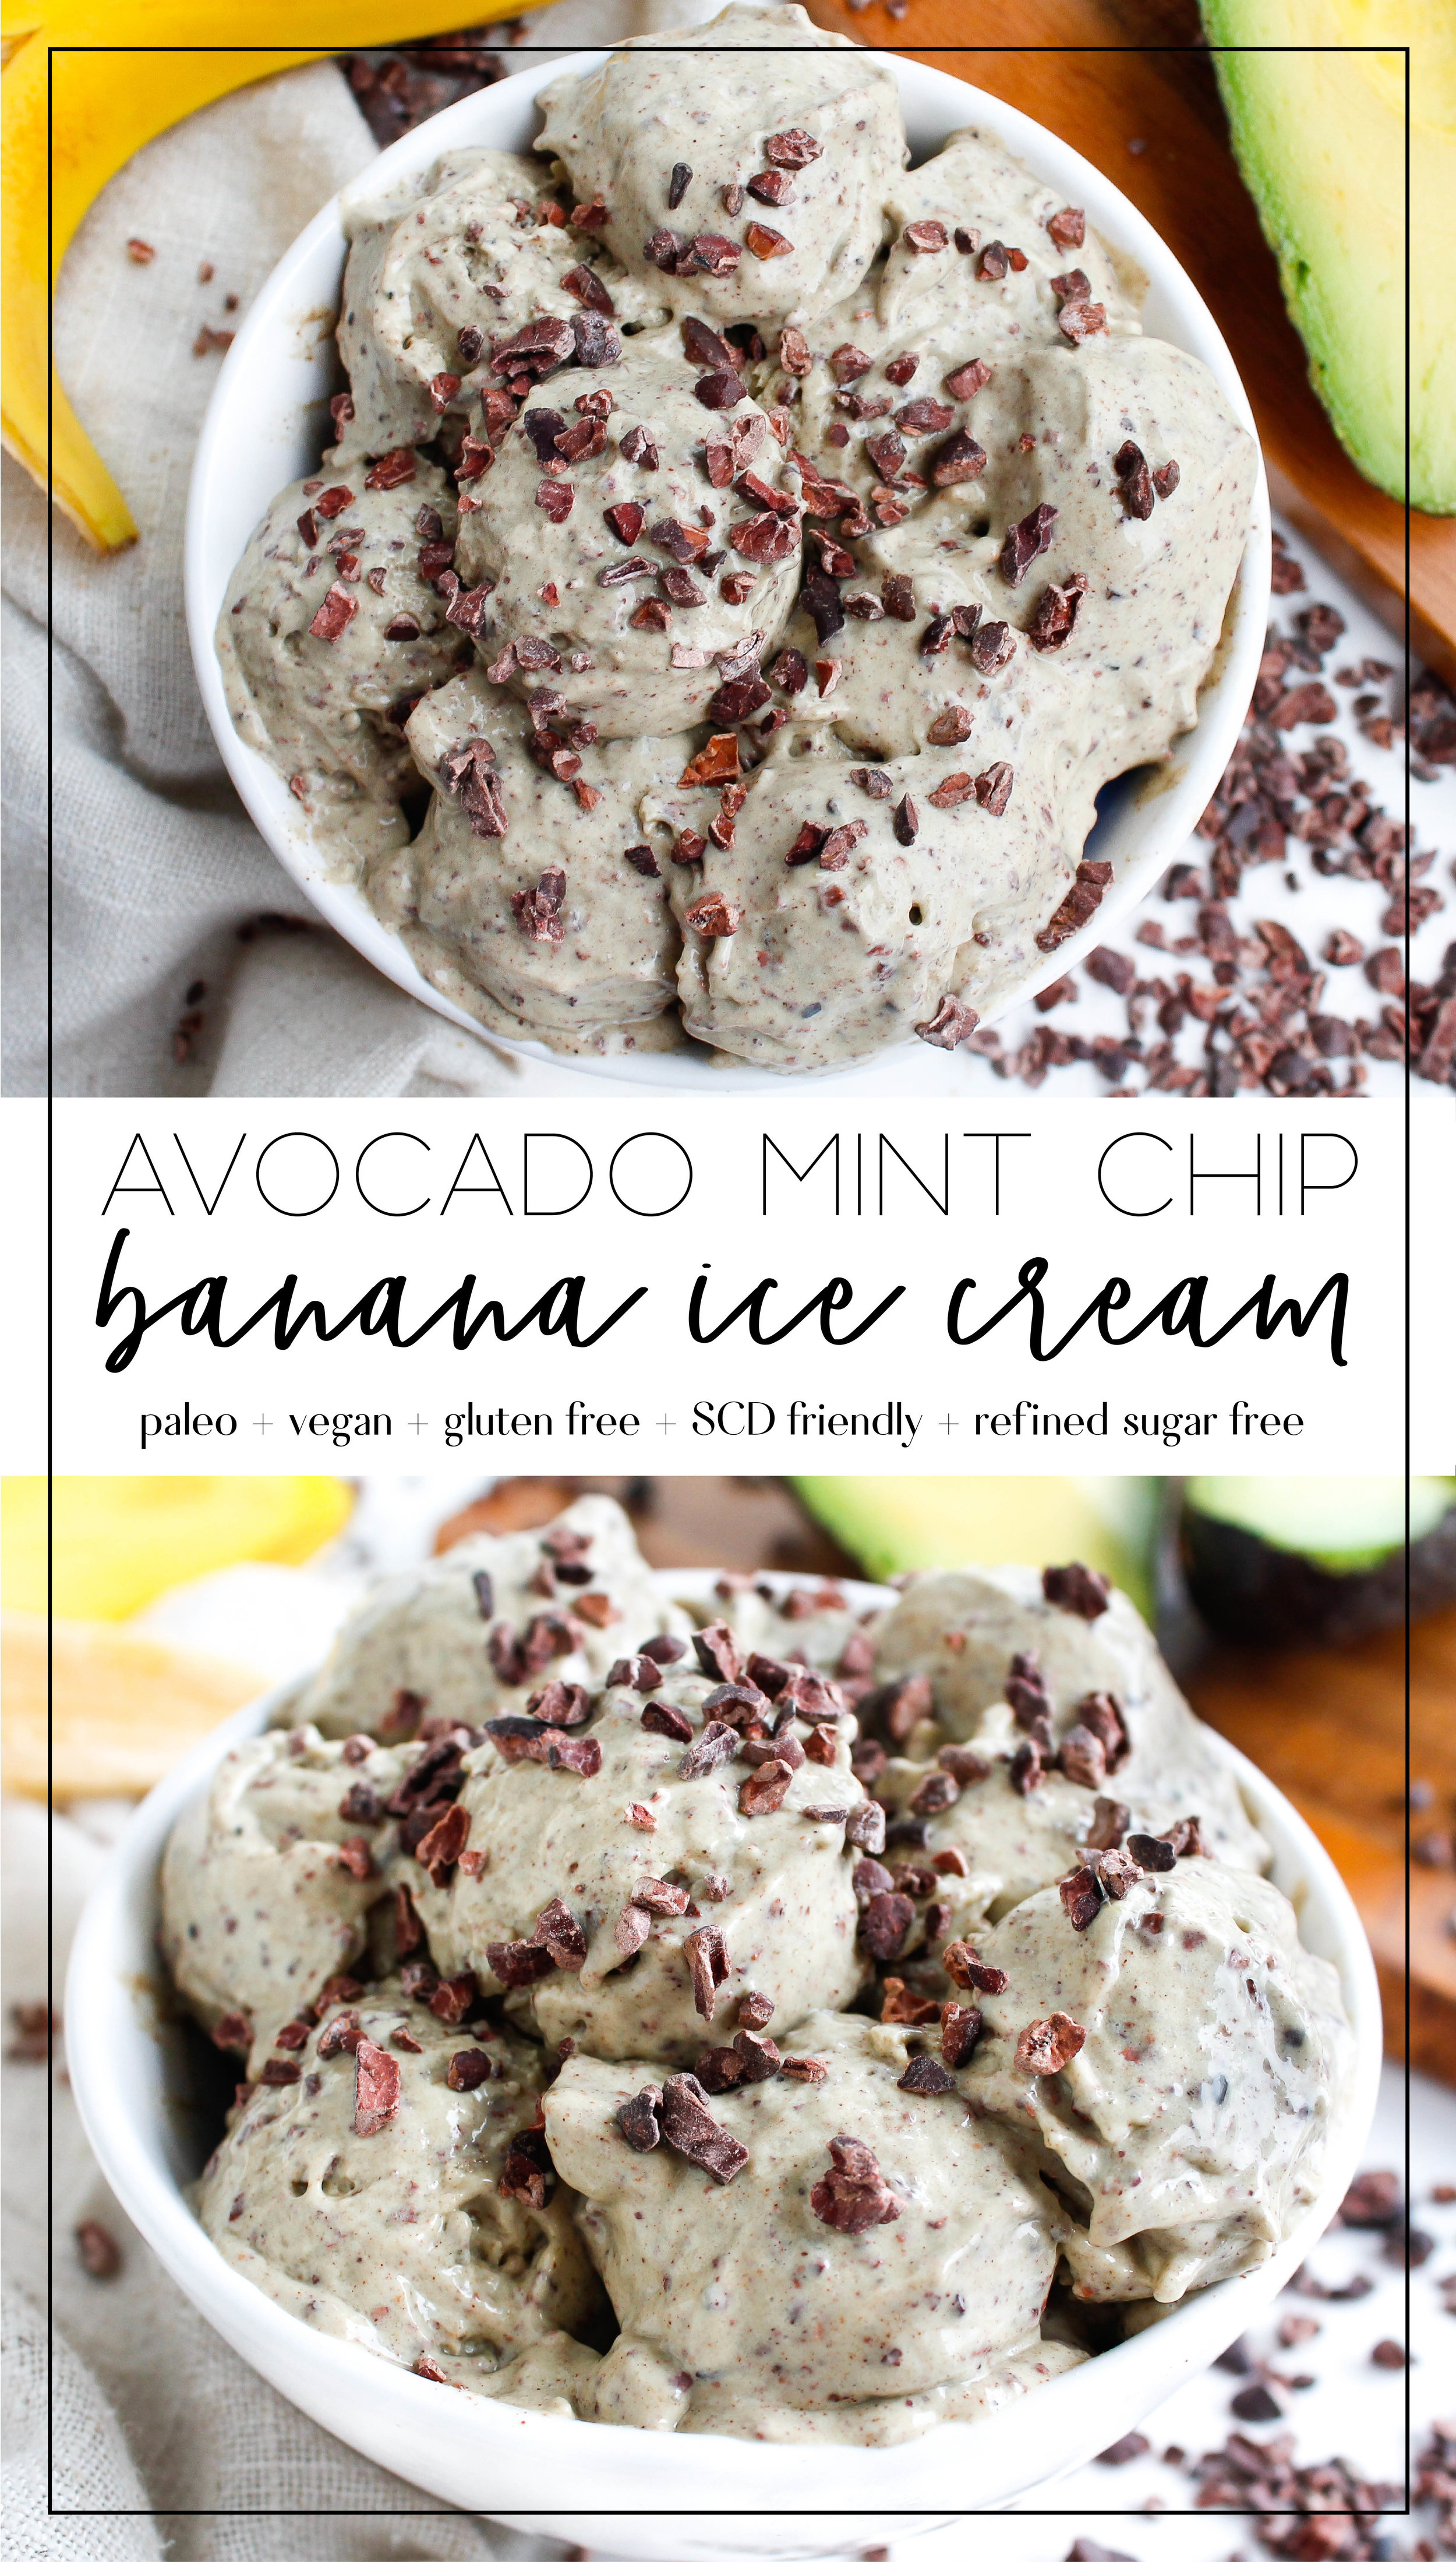 This paleo and vegan avocado mint chip banana ice cream is the perfect way to satisfy your sweet cravings without compromising your health or gut health! It's refined sugar free and gluten free as well! Full of healthy fats, antioxidants and fruity goodness. #paleodessert #bananaicecream